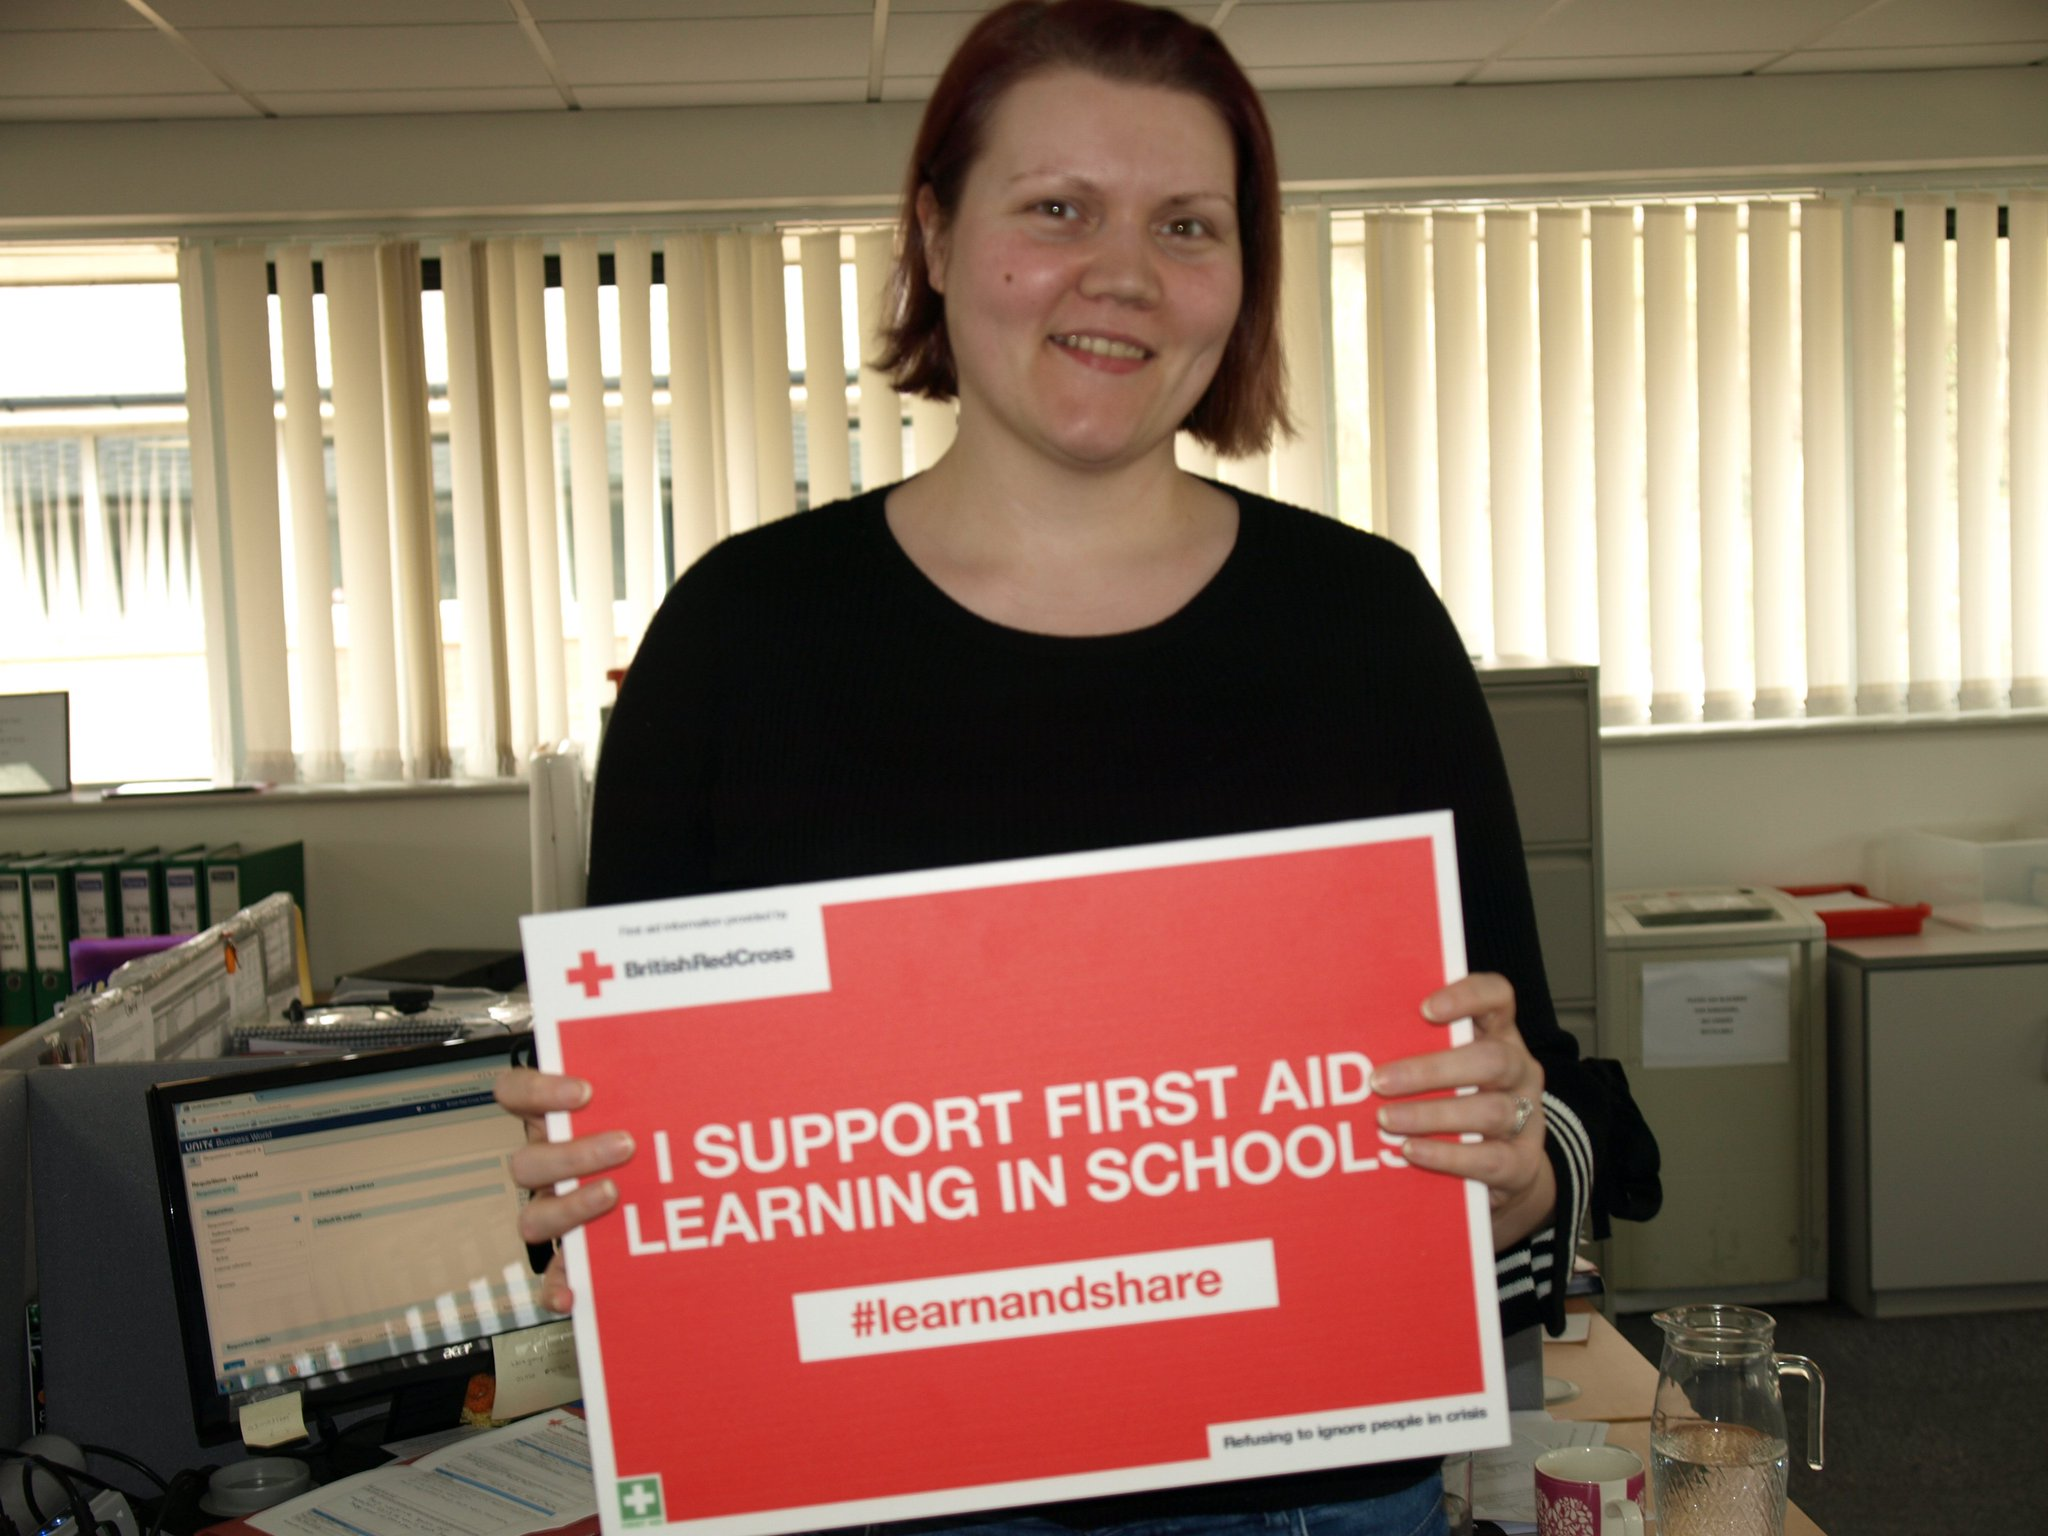 Kate Edwards supports first aid learning in schools in Wales. #lifesavingskills are essential so  #learnandshare with @RedCrossWales https://t.co/KzbNzpf8Kz